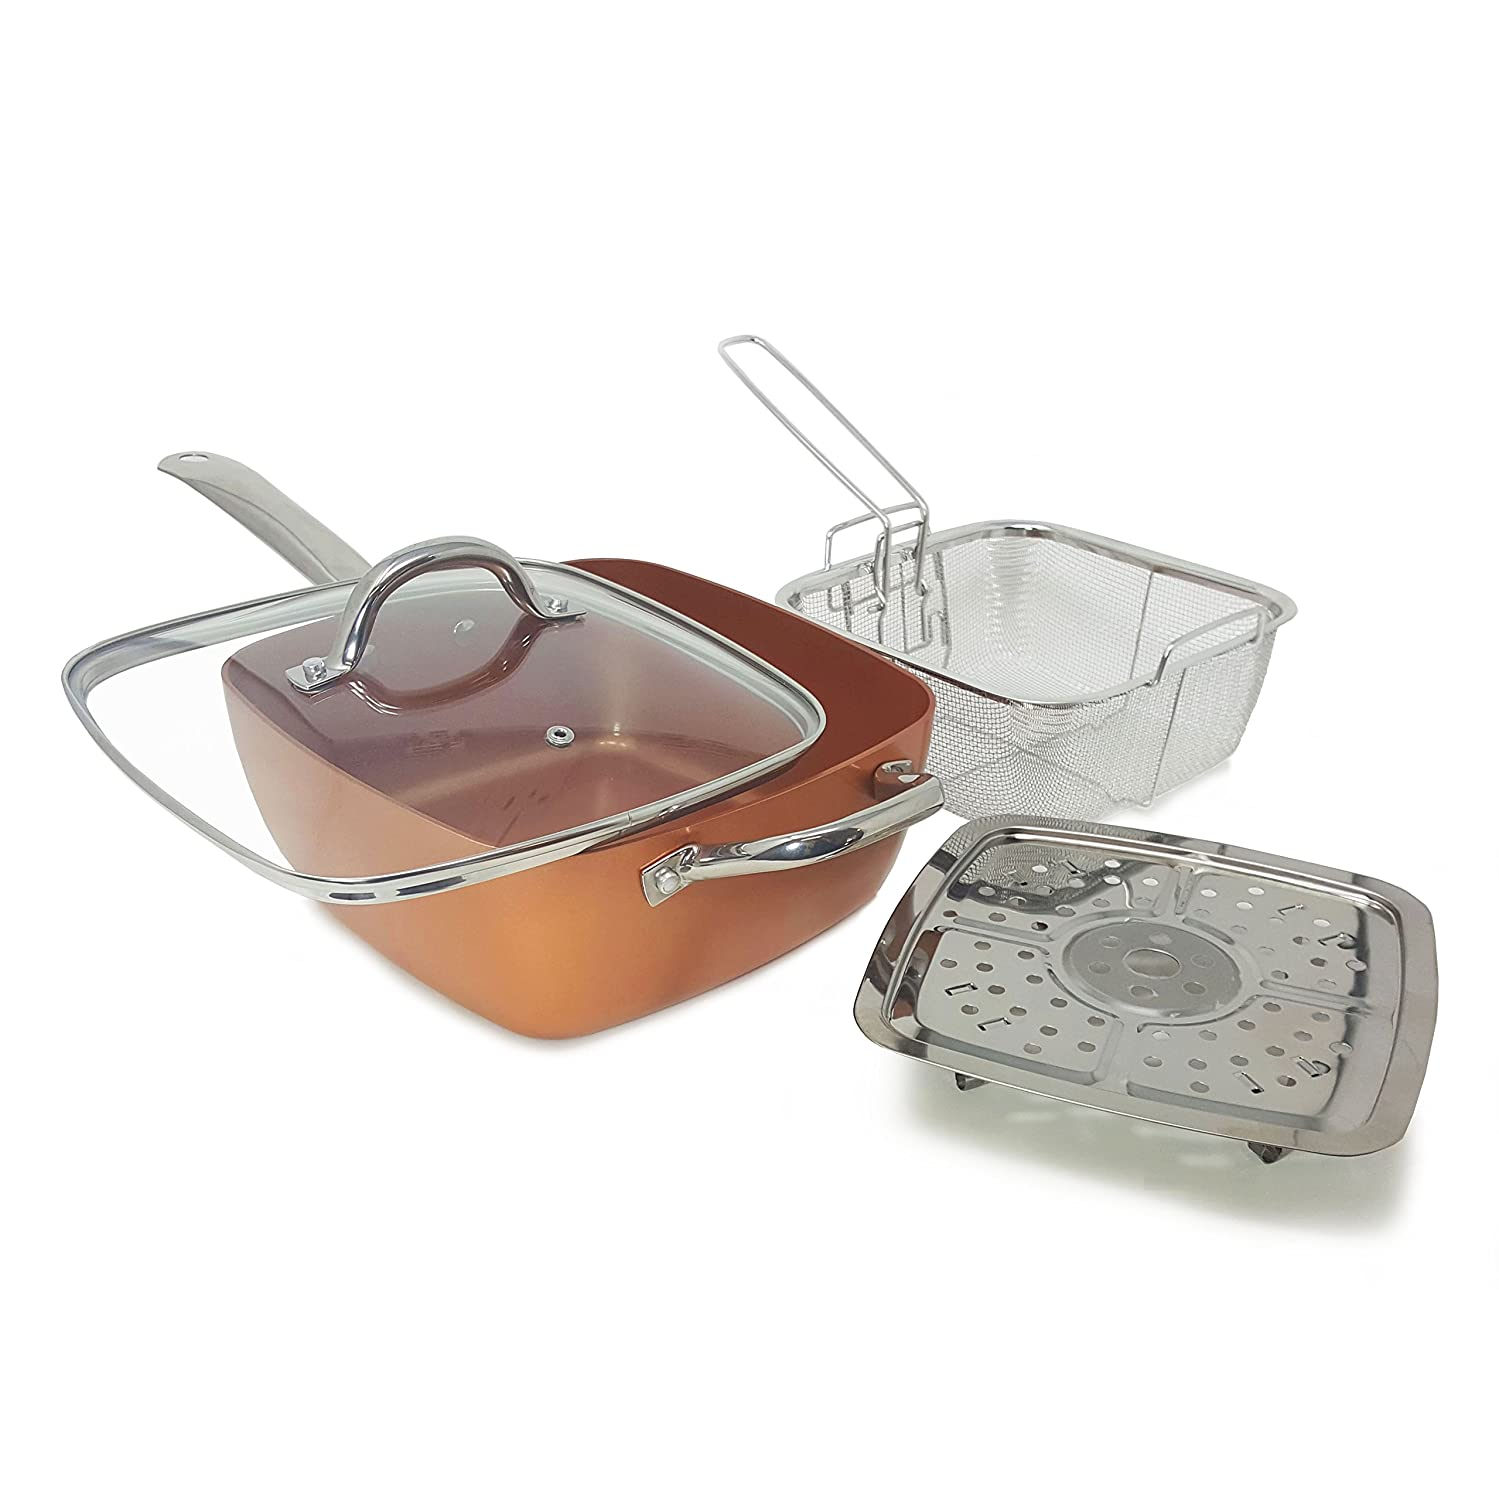 1 Award Winning Copper Ceramic Square Non-Stick Ceramic Pan 4 Piece Set for Frying, Baking, Broiling, Steaming Braising with Fry Basket Steamer Tempered Glass Lid – As Seen On Tv